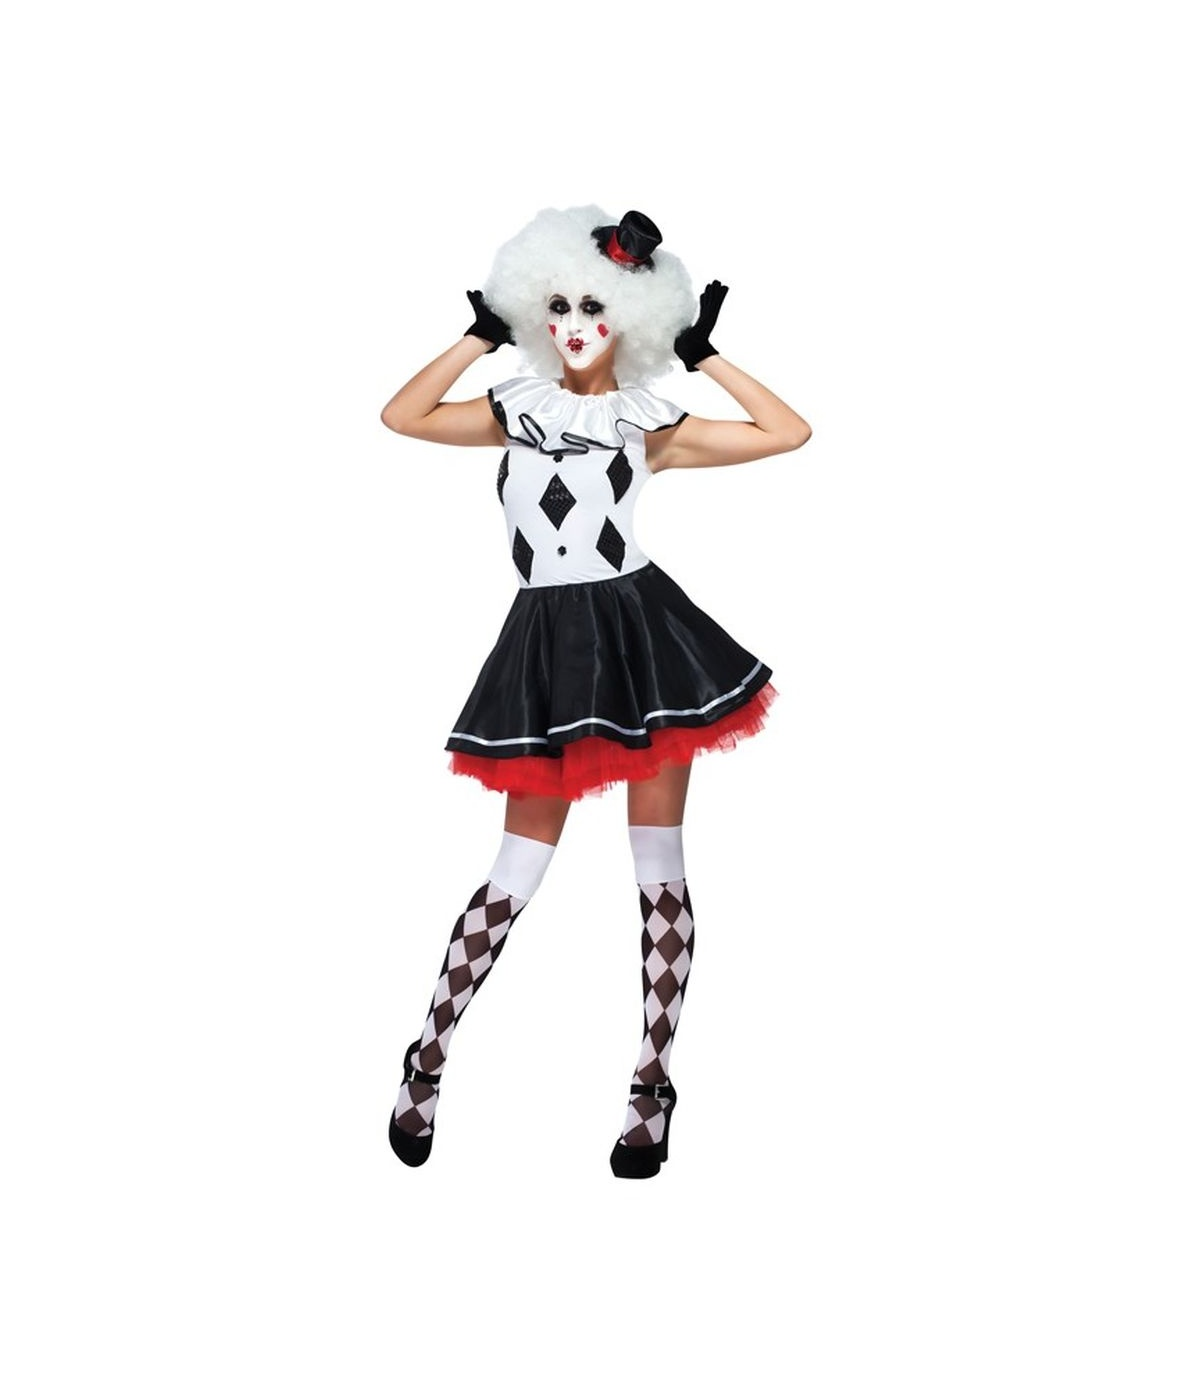 harlequin pantomime clown womens costume clown costumes. Black Bedroom Furniture Sets. Home Design Ideas